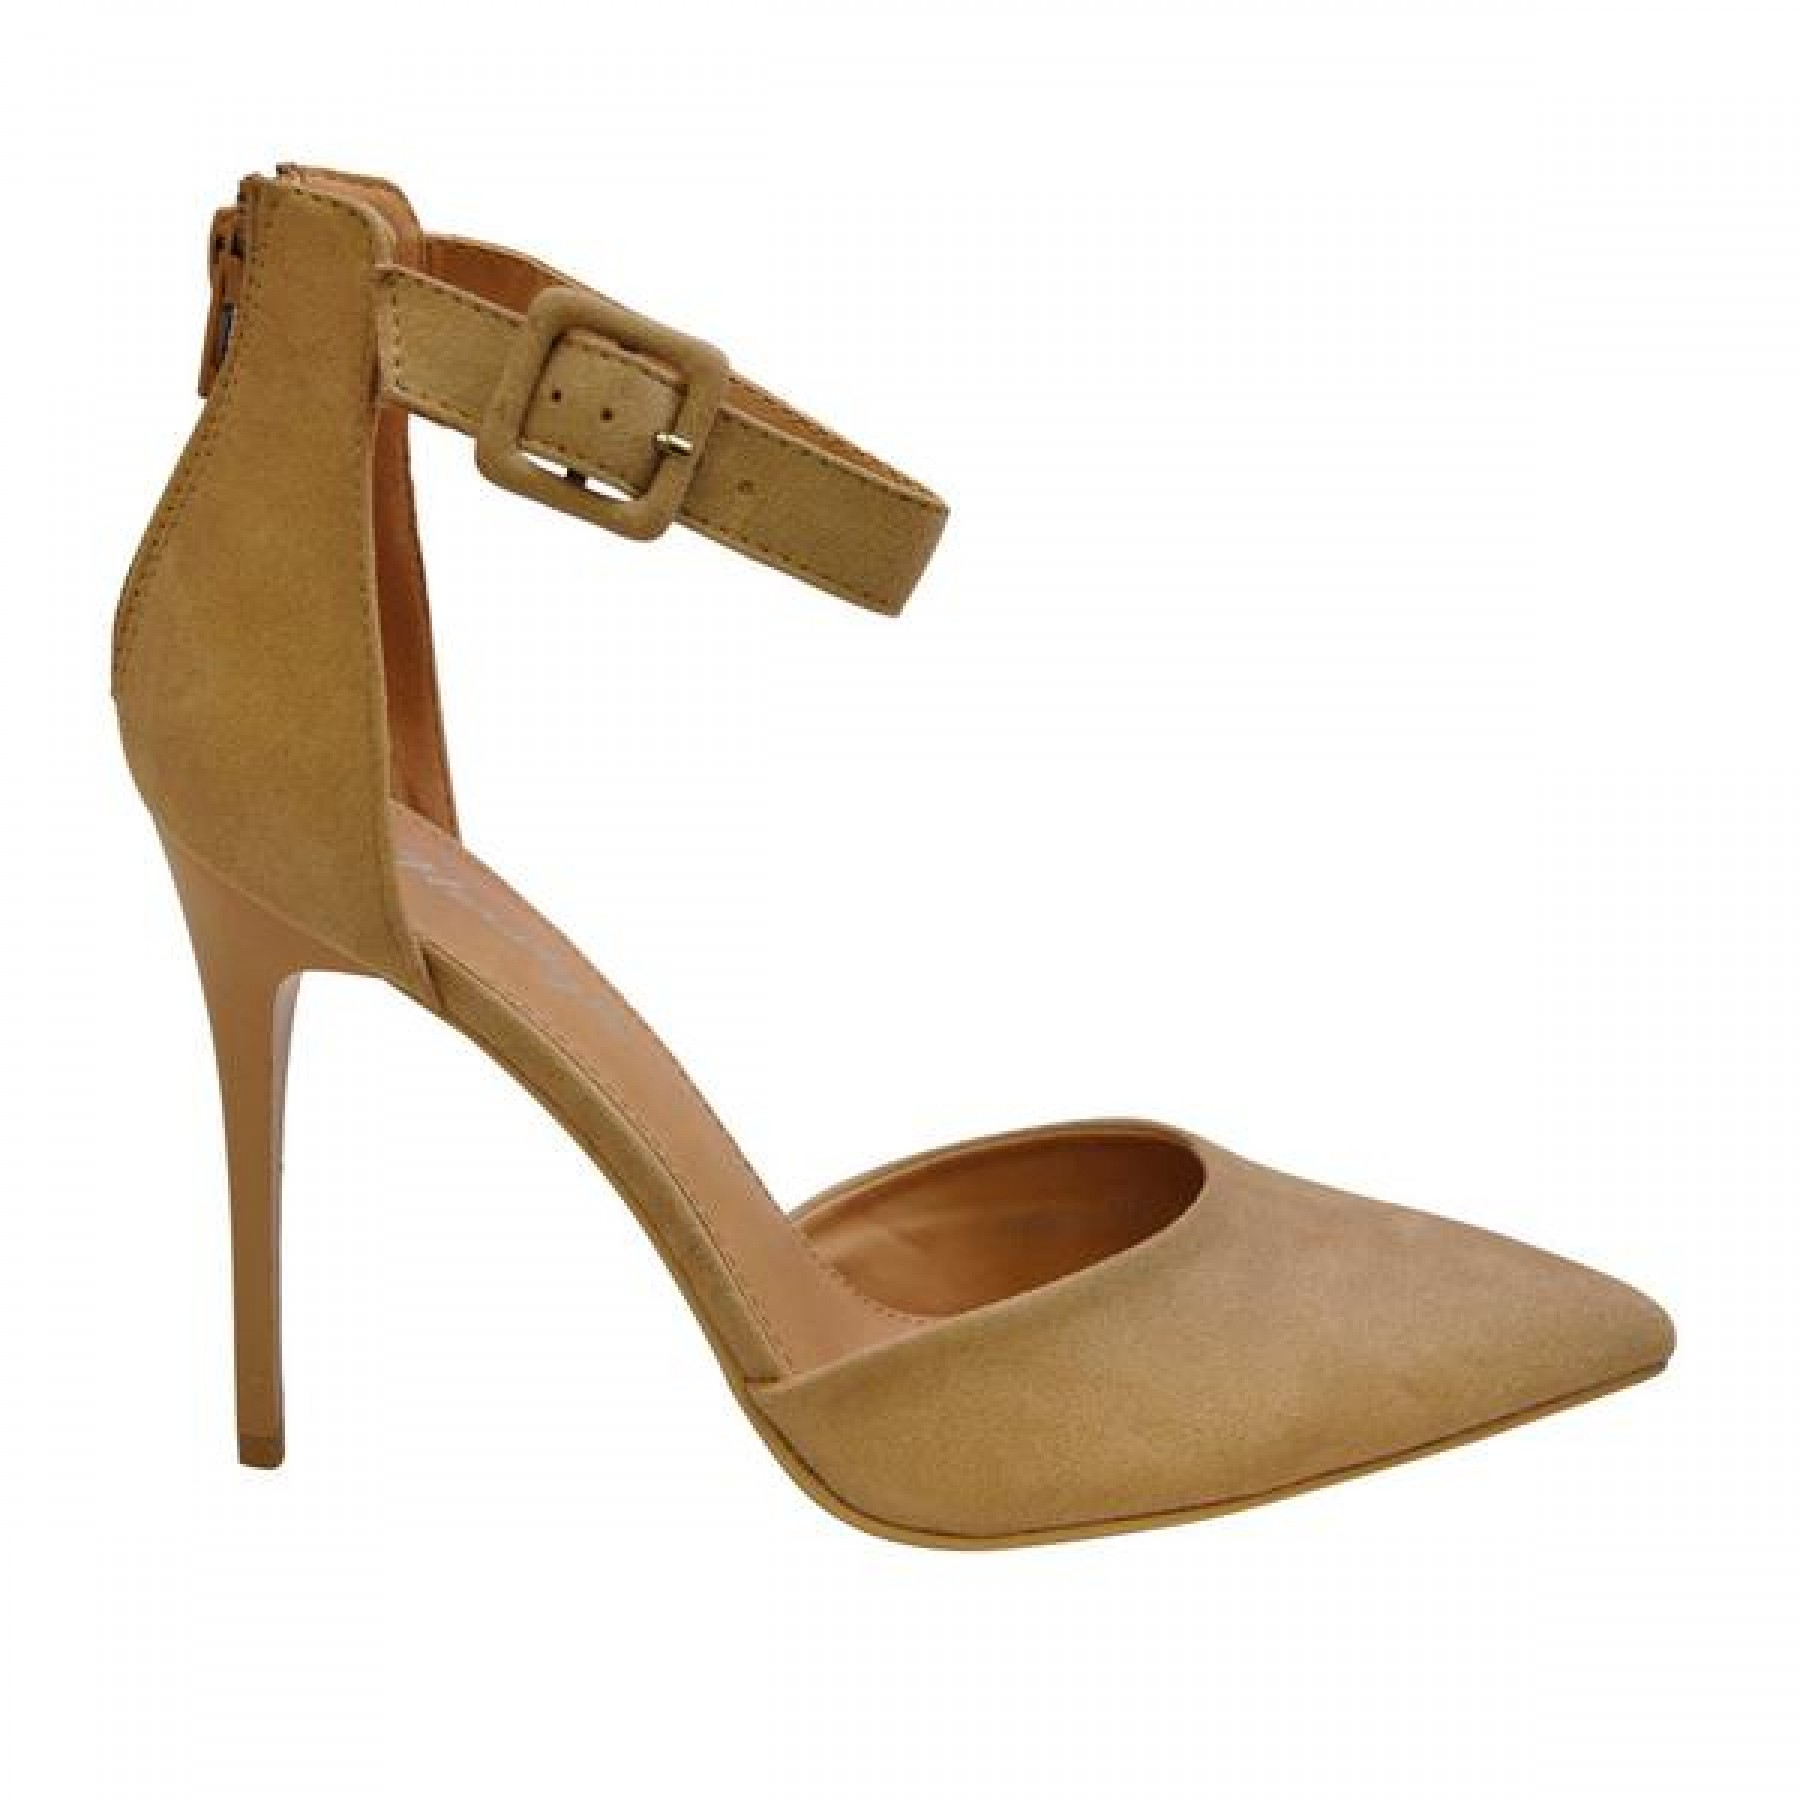 Women's Nude Manmade Natllia 4-inch D'Orsay Heel with Textured Upper